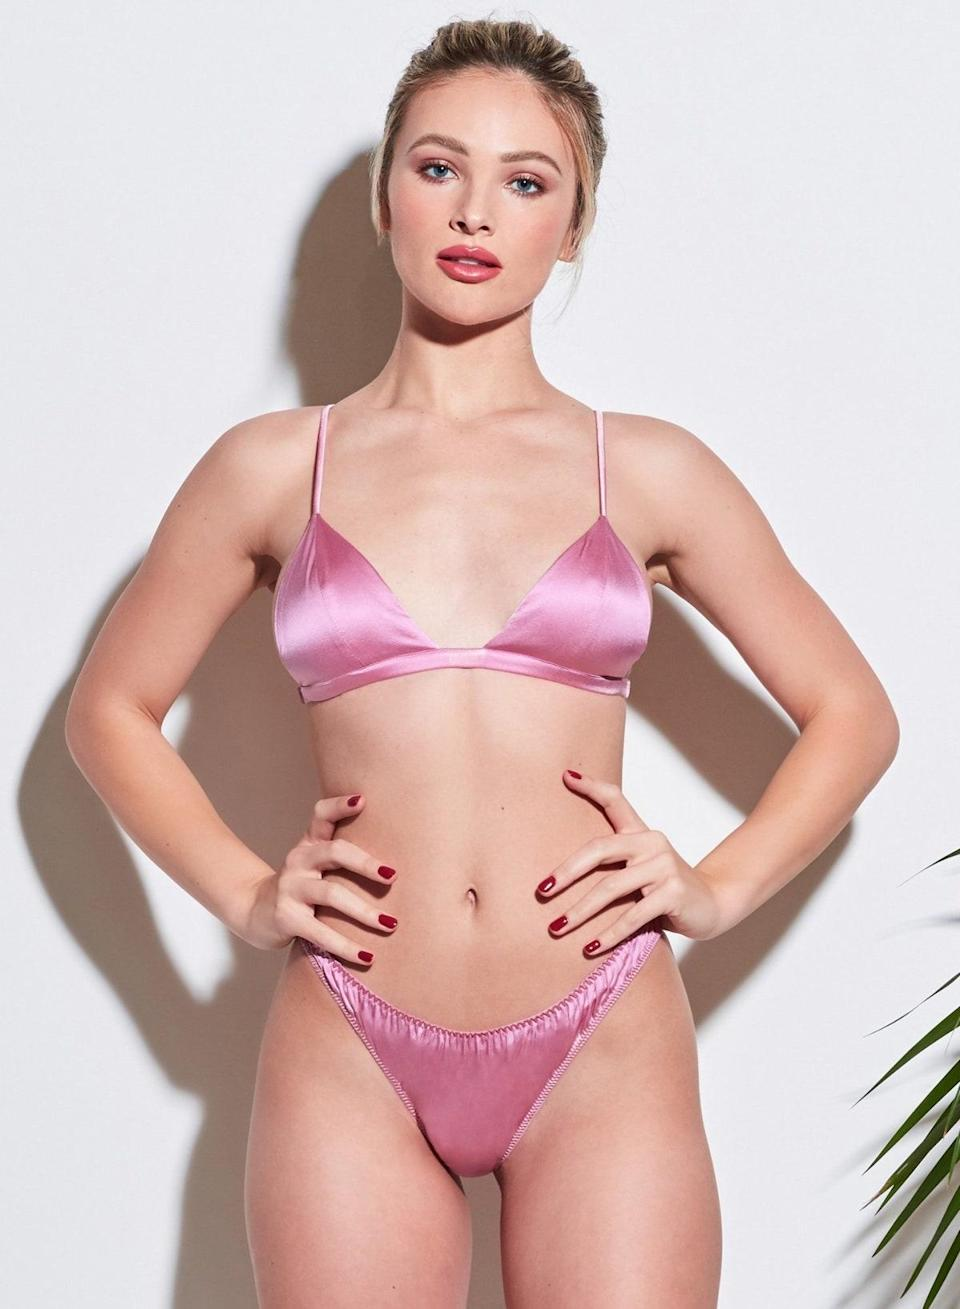 """Put a luxe spin on your everyday with this hot pink bralette that would look so on-point styled underneath <a href=""""https://www.glamour.com/story/cute-fall-outfits?mbid=synd_yahoo_rss"""" rel=""""nofollow noopener"""" target=""""_blank"""" data-ylk=""""slk:an oversized blazer"""" class=""""link rapid-noclick-resp"""">an oversized blazer</a>. It's <a href=""""https://www.instyle.com/fashion/celebrities-in-fleur-du-mal"""" rel=""""nofollow noopener"""" target=""""_blank"""" data-ylk=""""slk:a celeb must-have"""" class=""""link rapid-noclick-resp"""">a celeb must-have</a> for a reason. $98, Fleur du Mal. <a href=""""https://www.fleurdumal.com/collections/lingerie-bras-soft-cupped/products/luxe-triangle-bra-bisou"""" rel=""""nofollow noopener"""" target=""""_blank"""" data-ylk=""""slk:Get it now!"""" class=""""link rapid-noclick-resp"""">Get it now!</a>"""